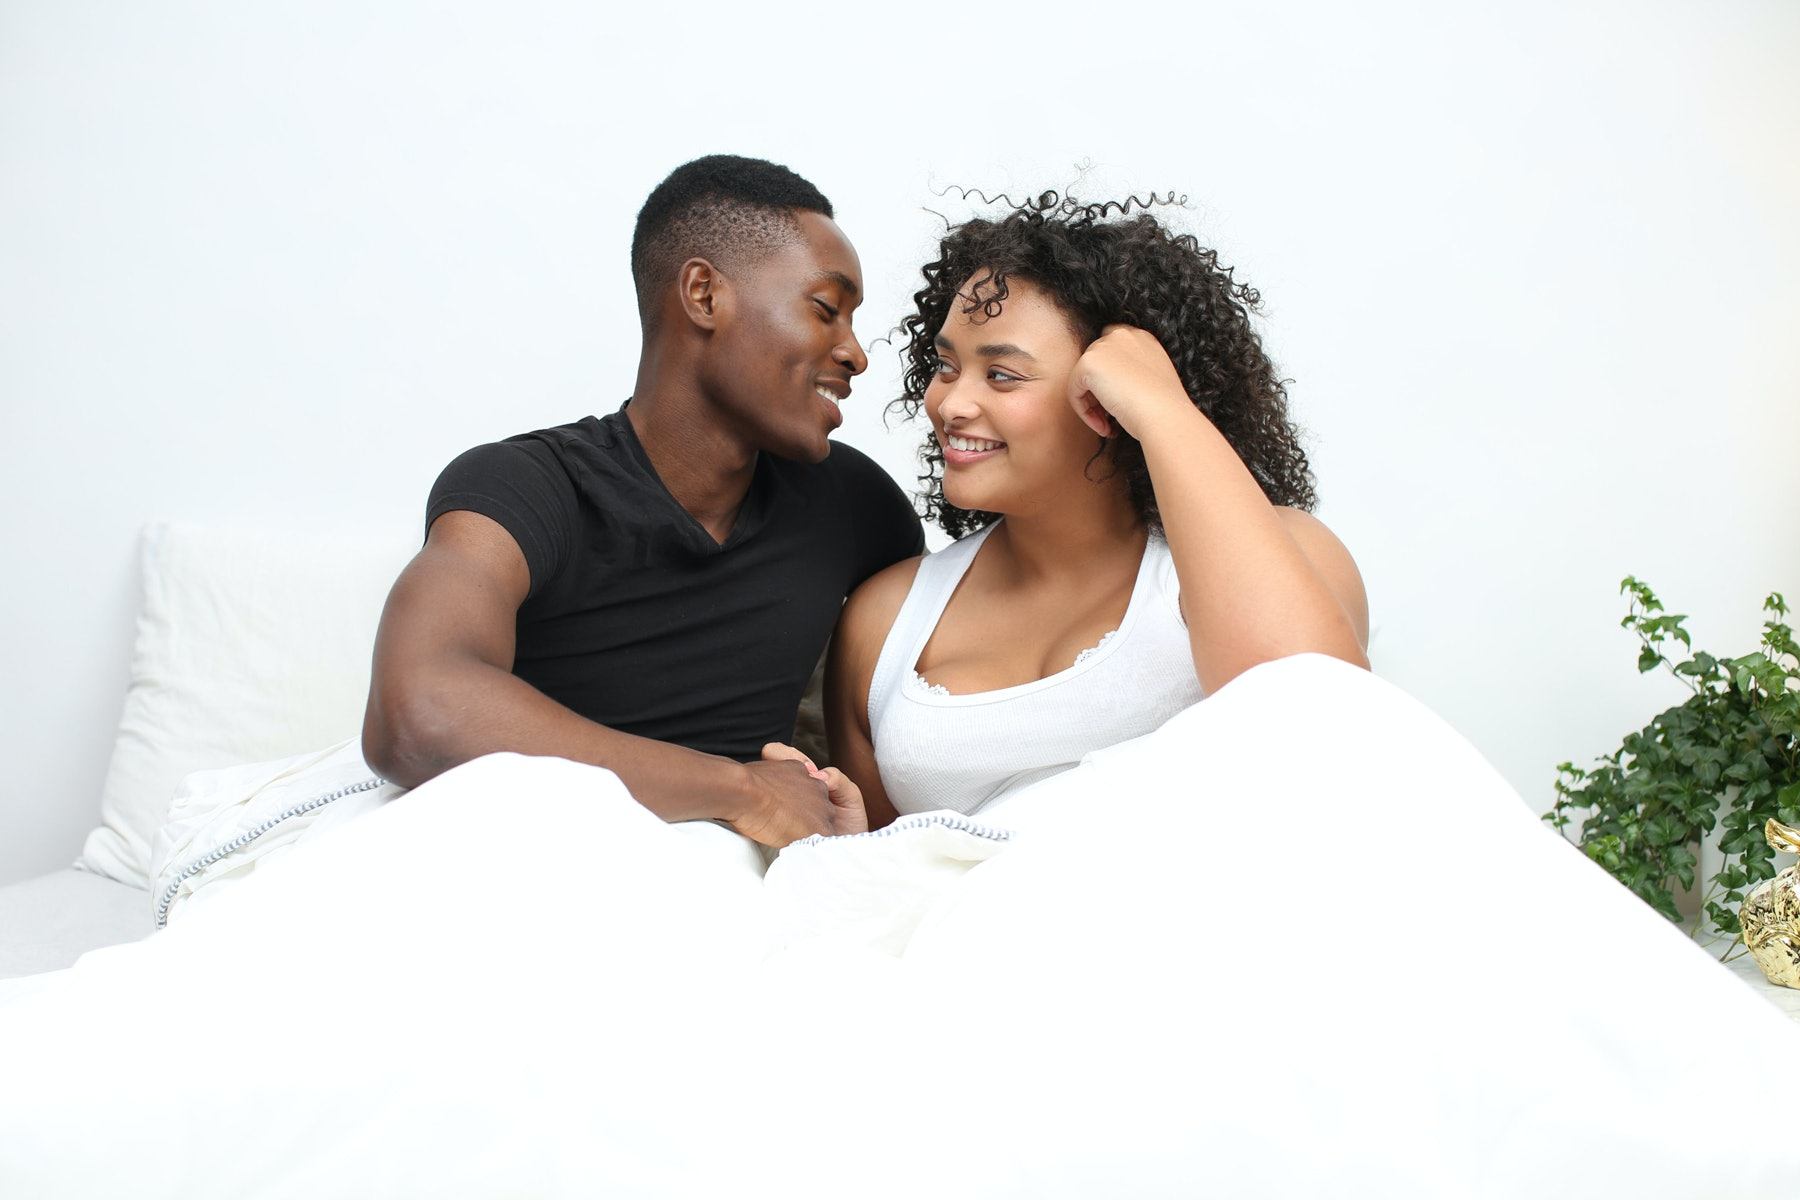 Online dating for casual relationships